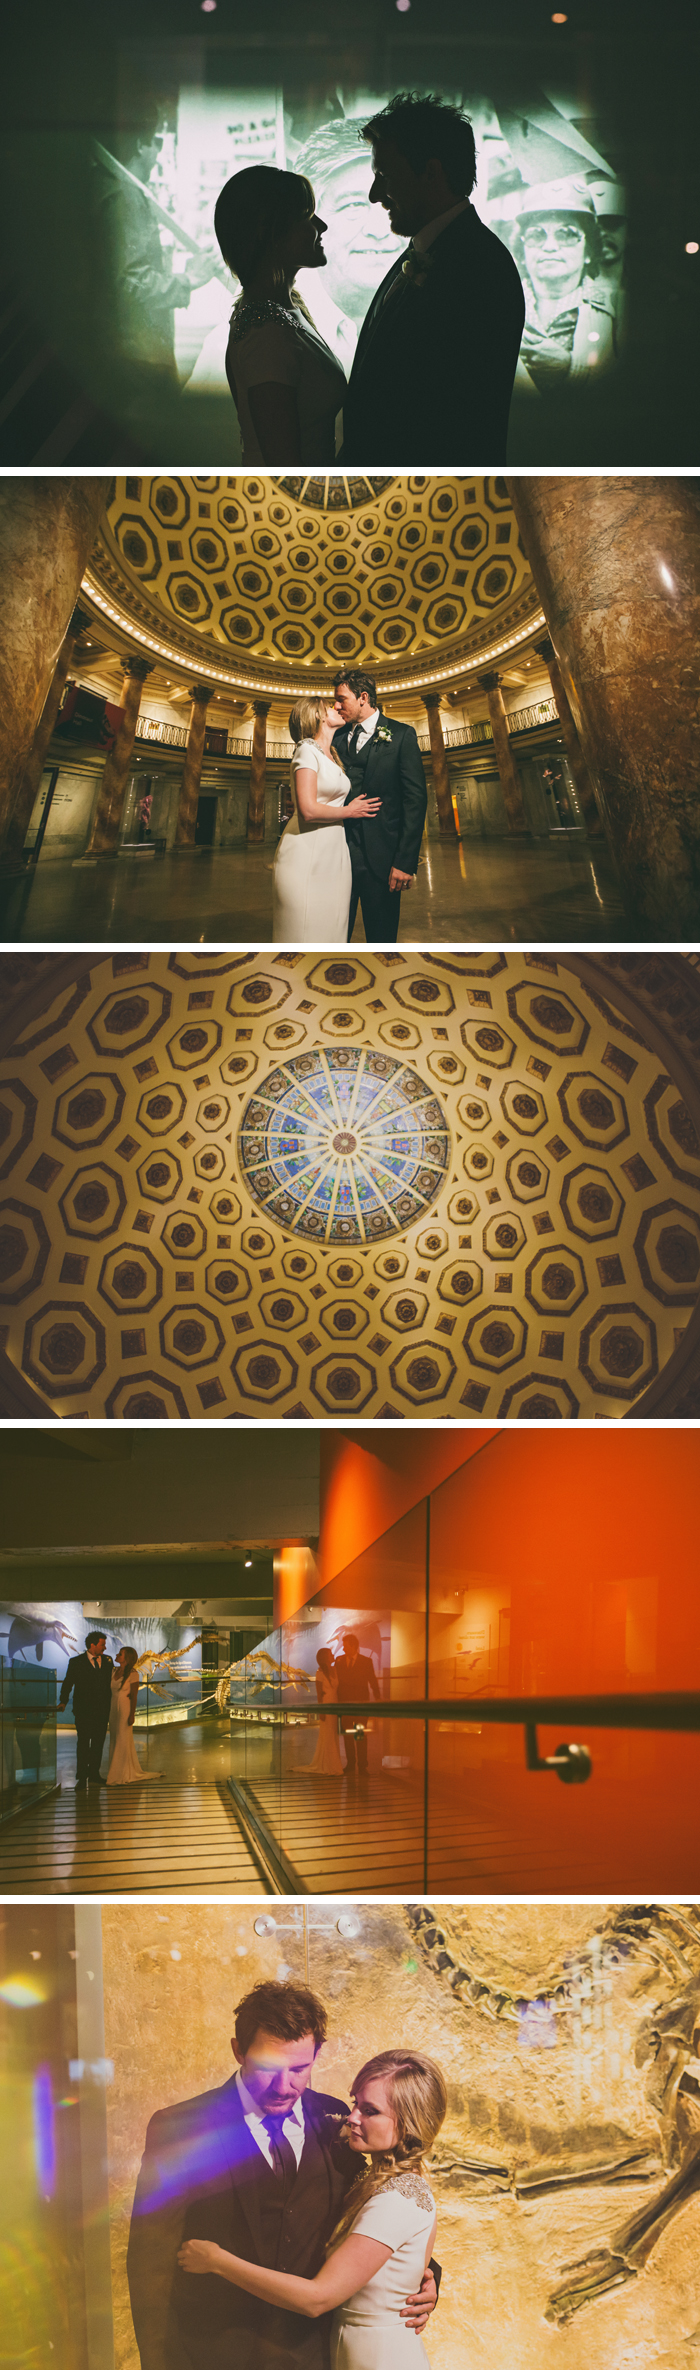 natural history museum wedding photos LA